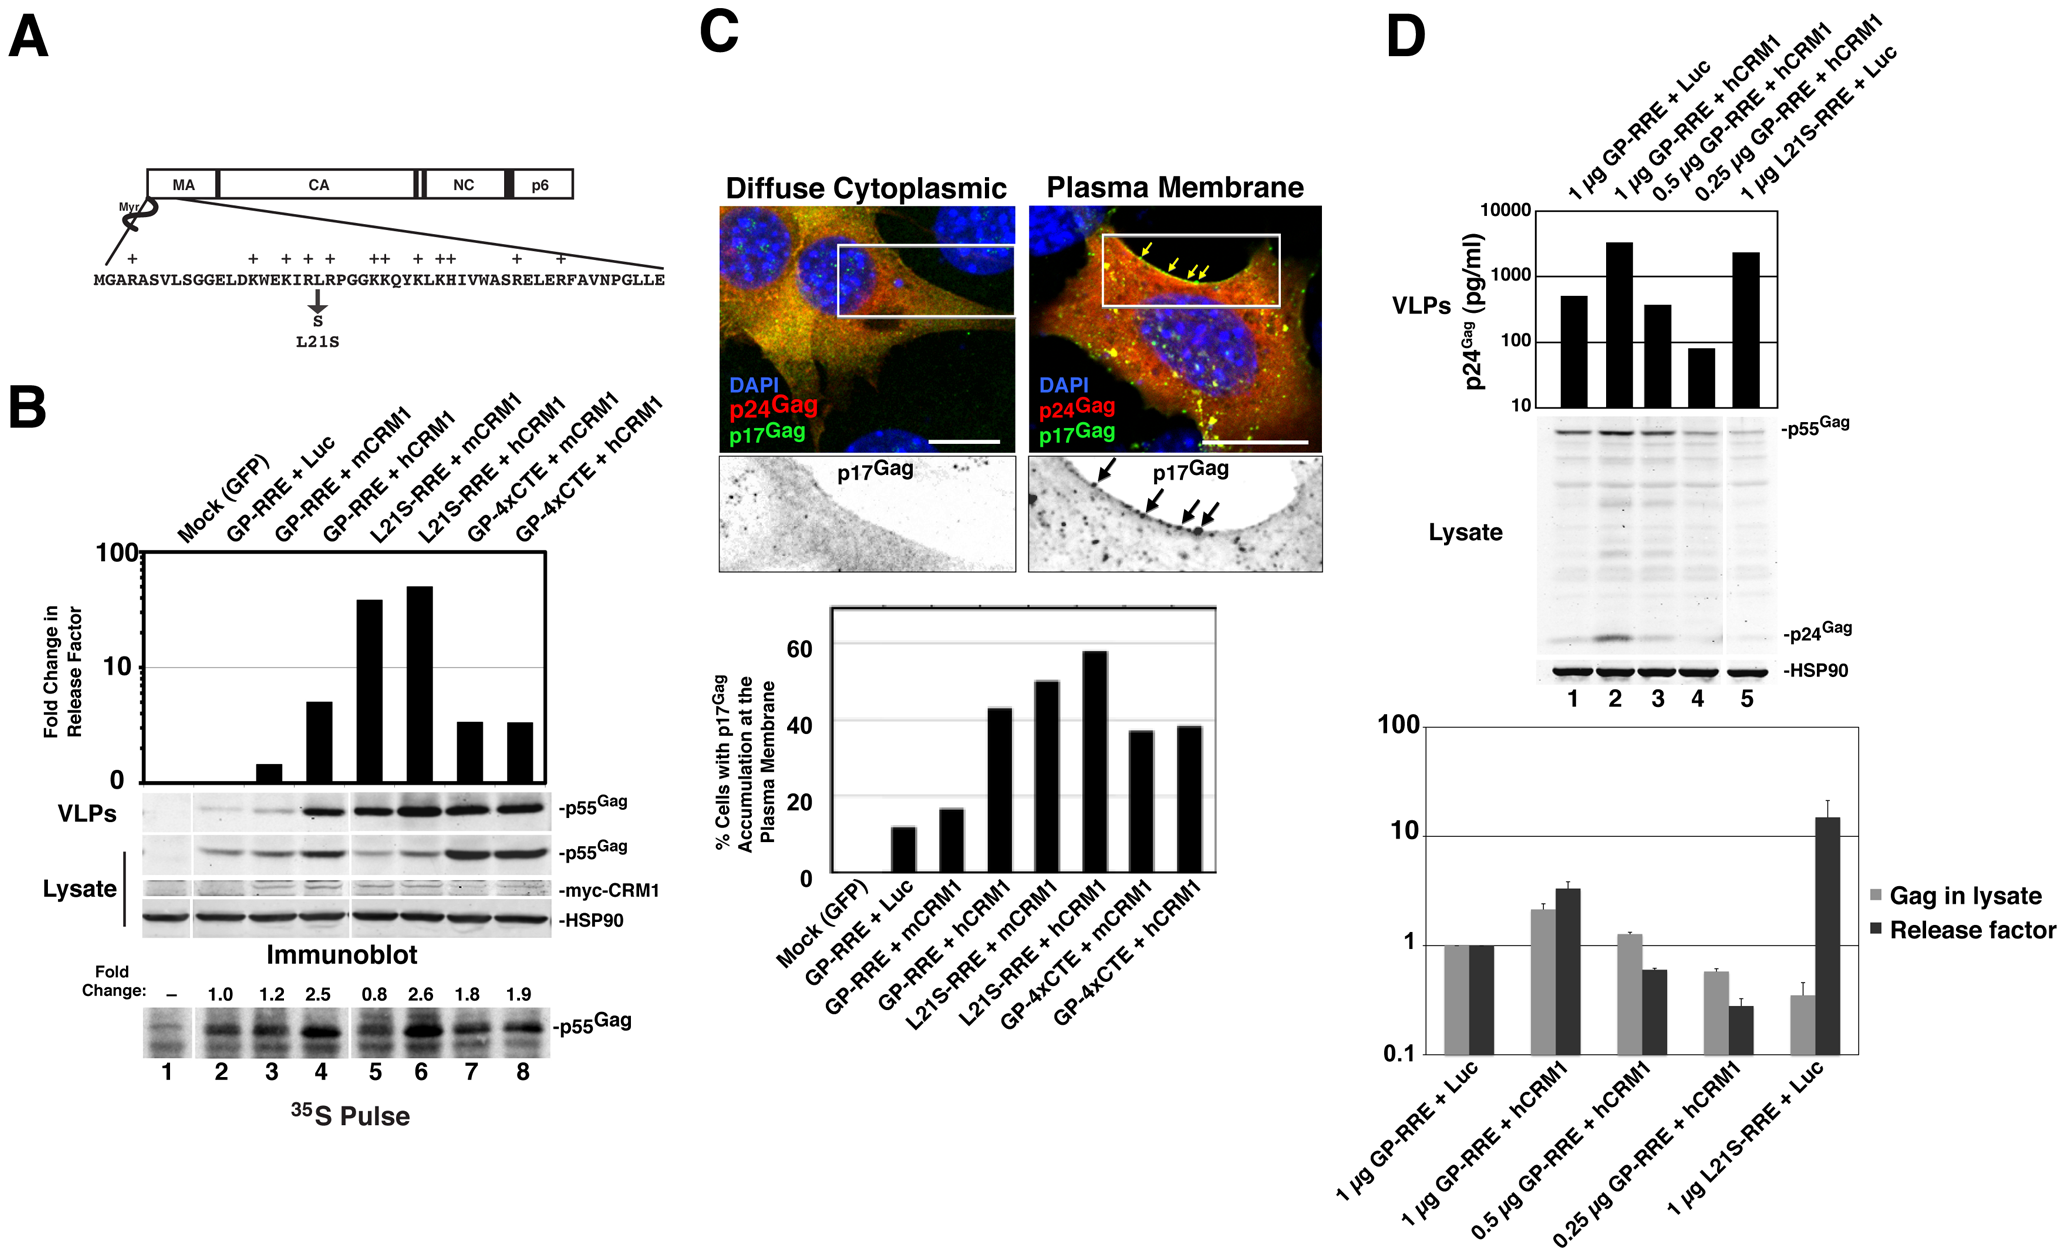 hCRM1 expression in mouse cells improves Gag assembly efficiency and trafficking to the plasma membrane.